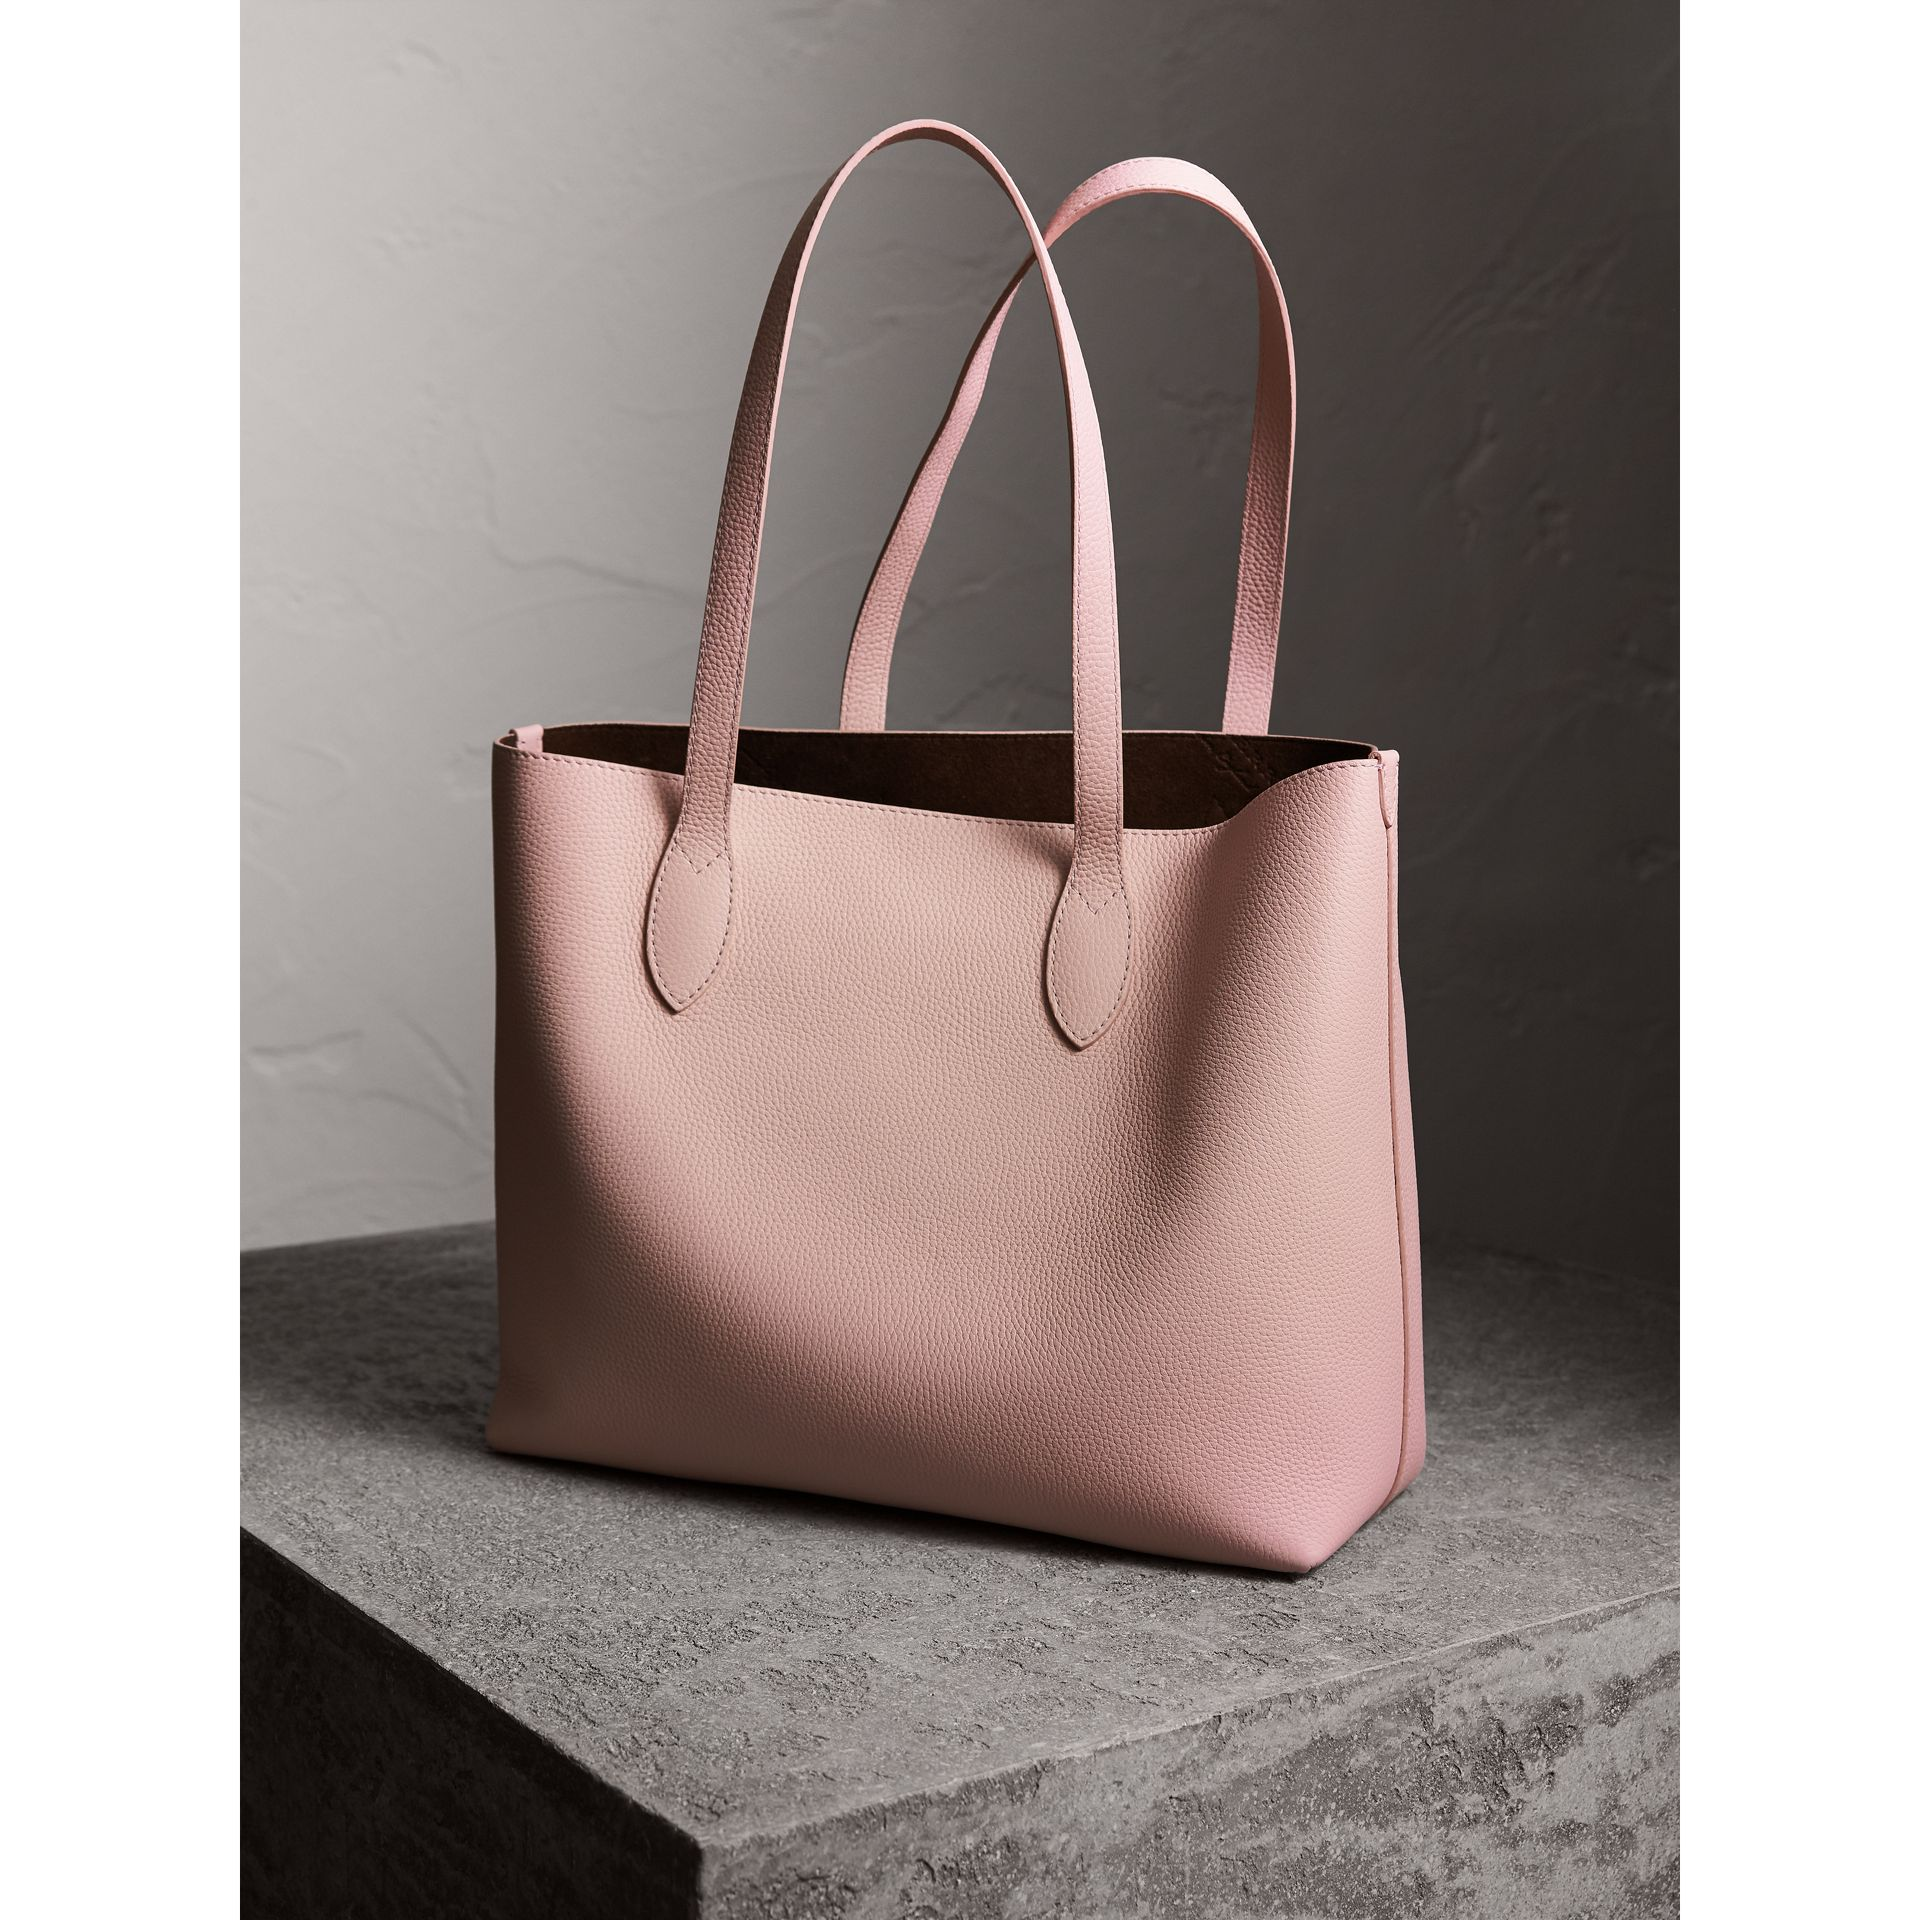 Sac tote en cuir estampé (Rose Platiné Pâle) - Femme | Burberry - photo de la galerie 4